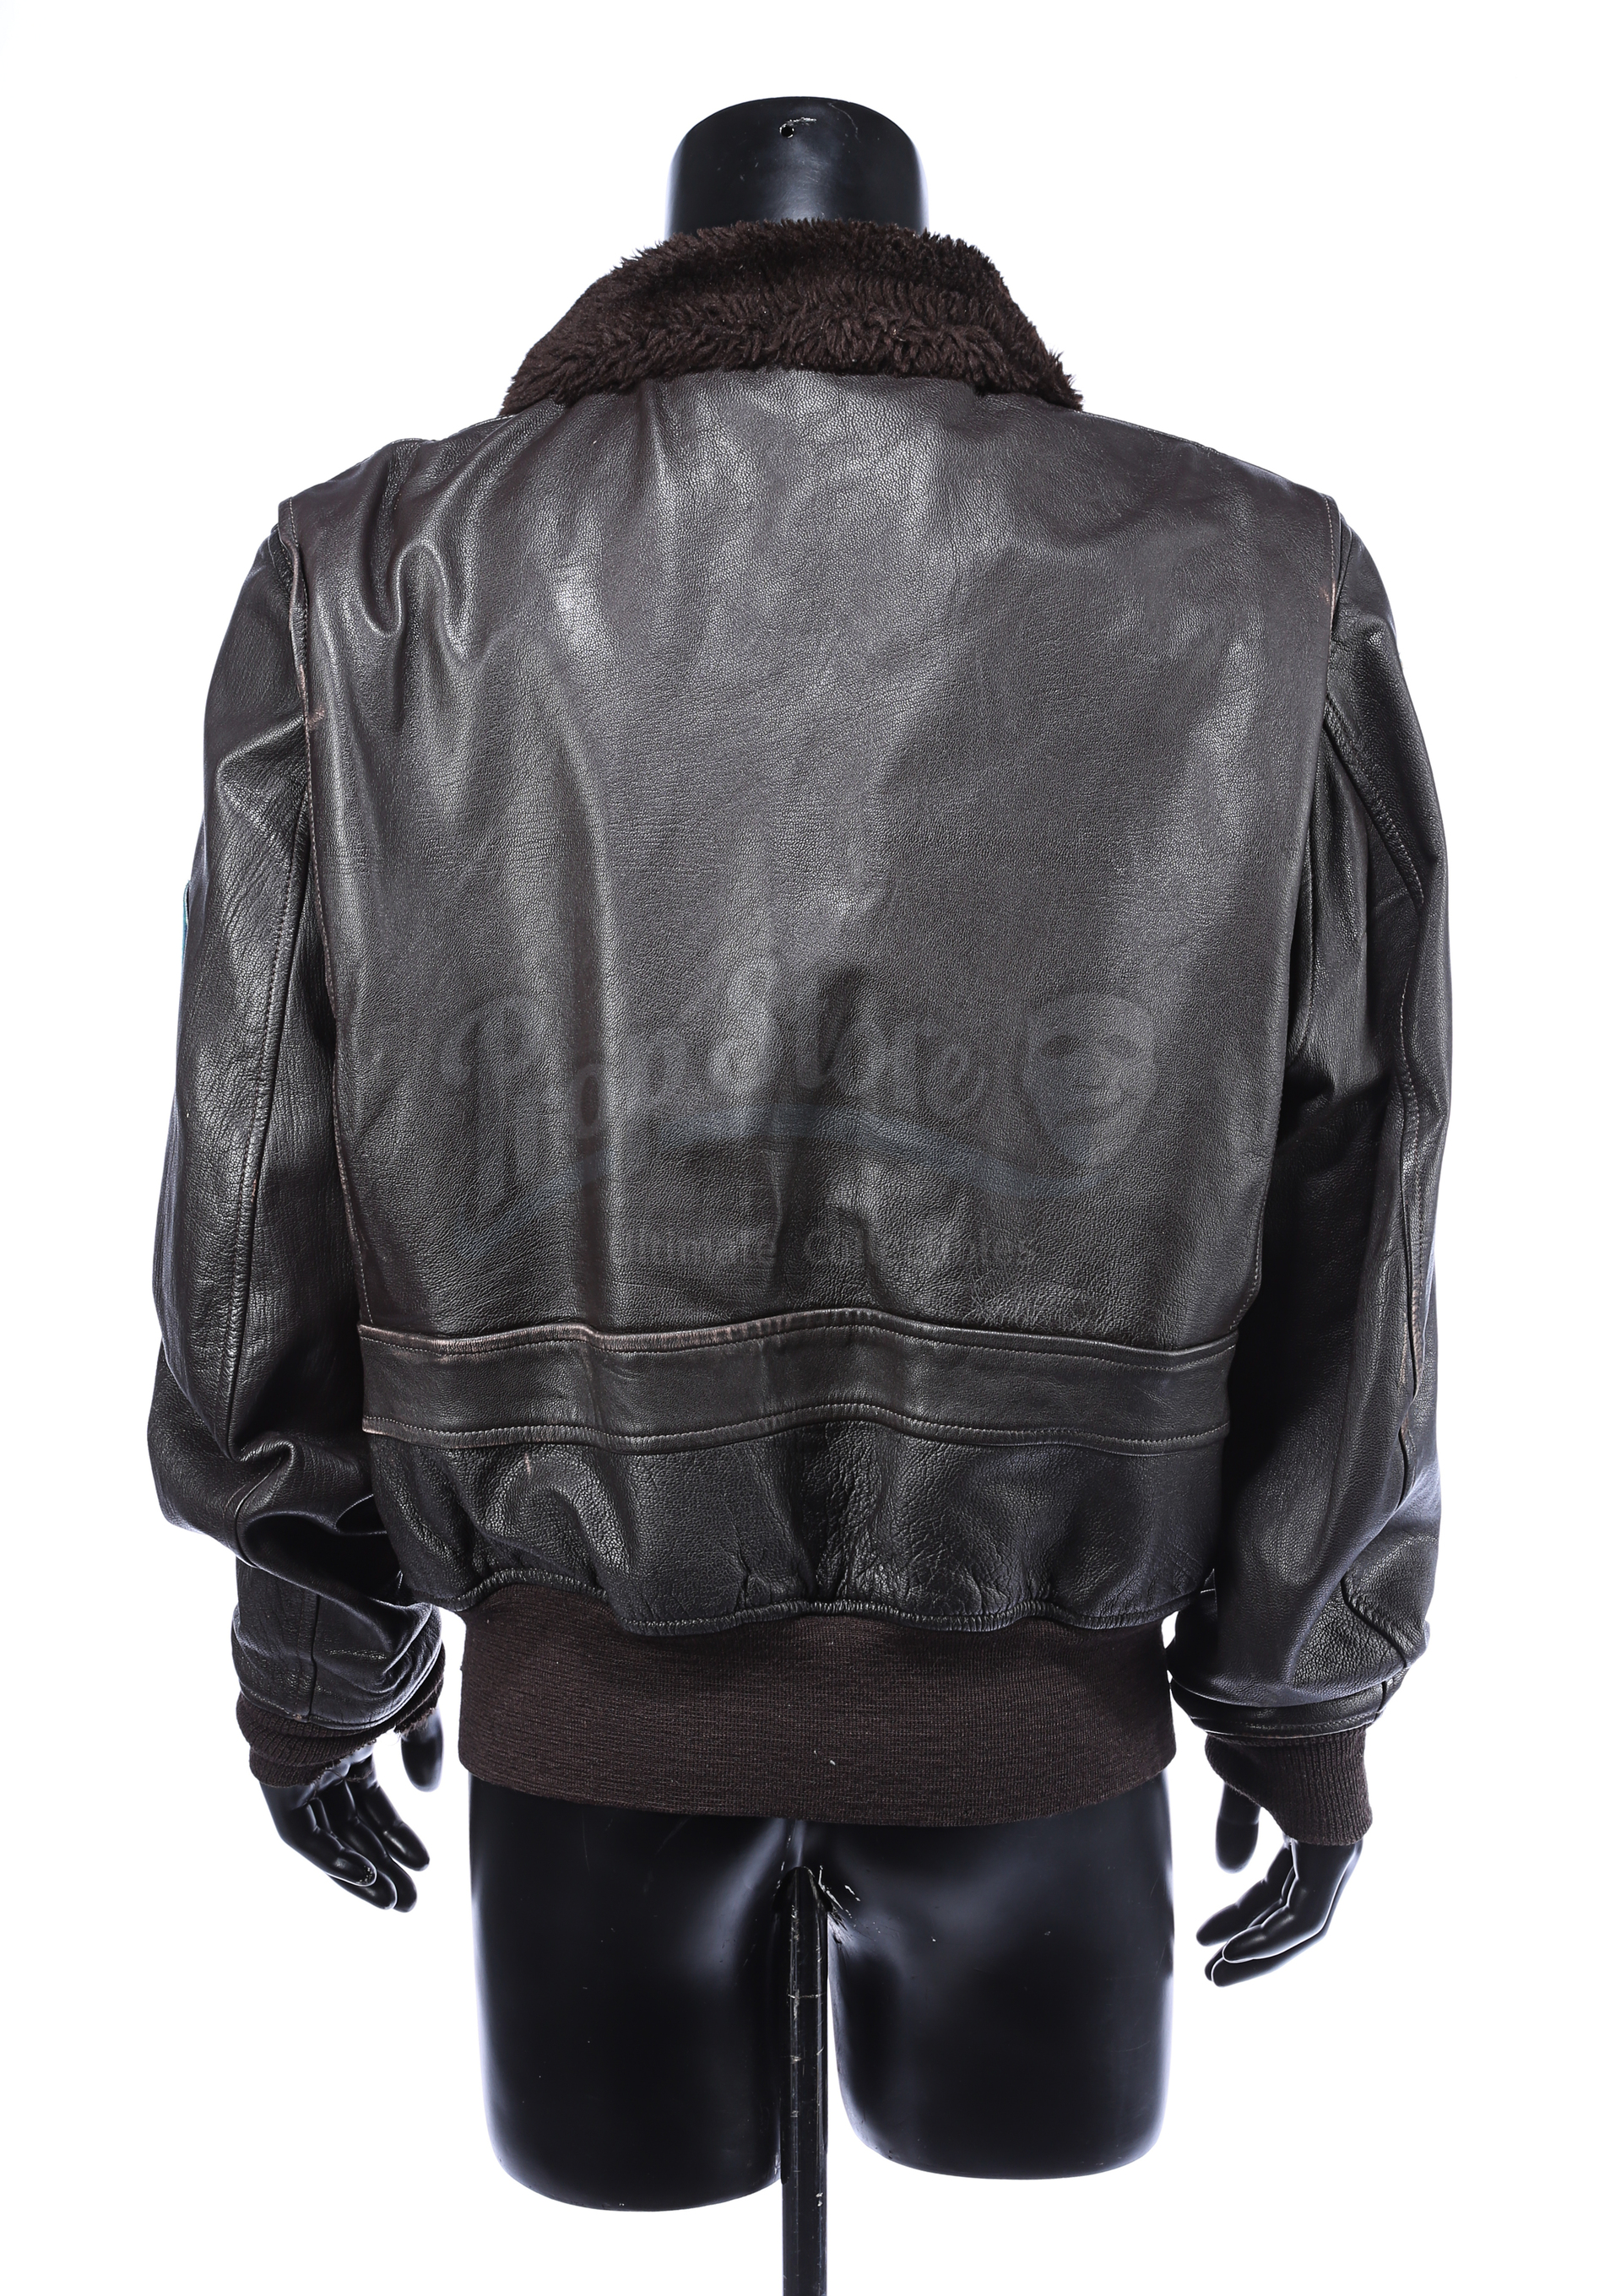 THE 6TH DAY (2000) - Adam Gibson's (Arnold Schwarzenegger) Leather Jacket - Image 9 of 15